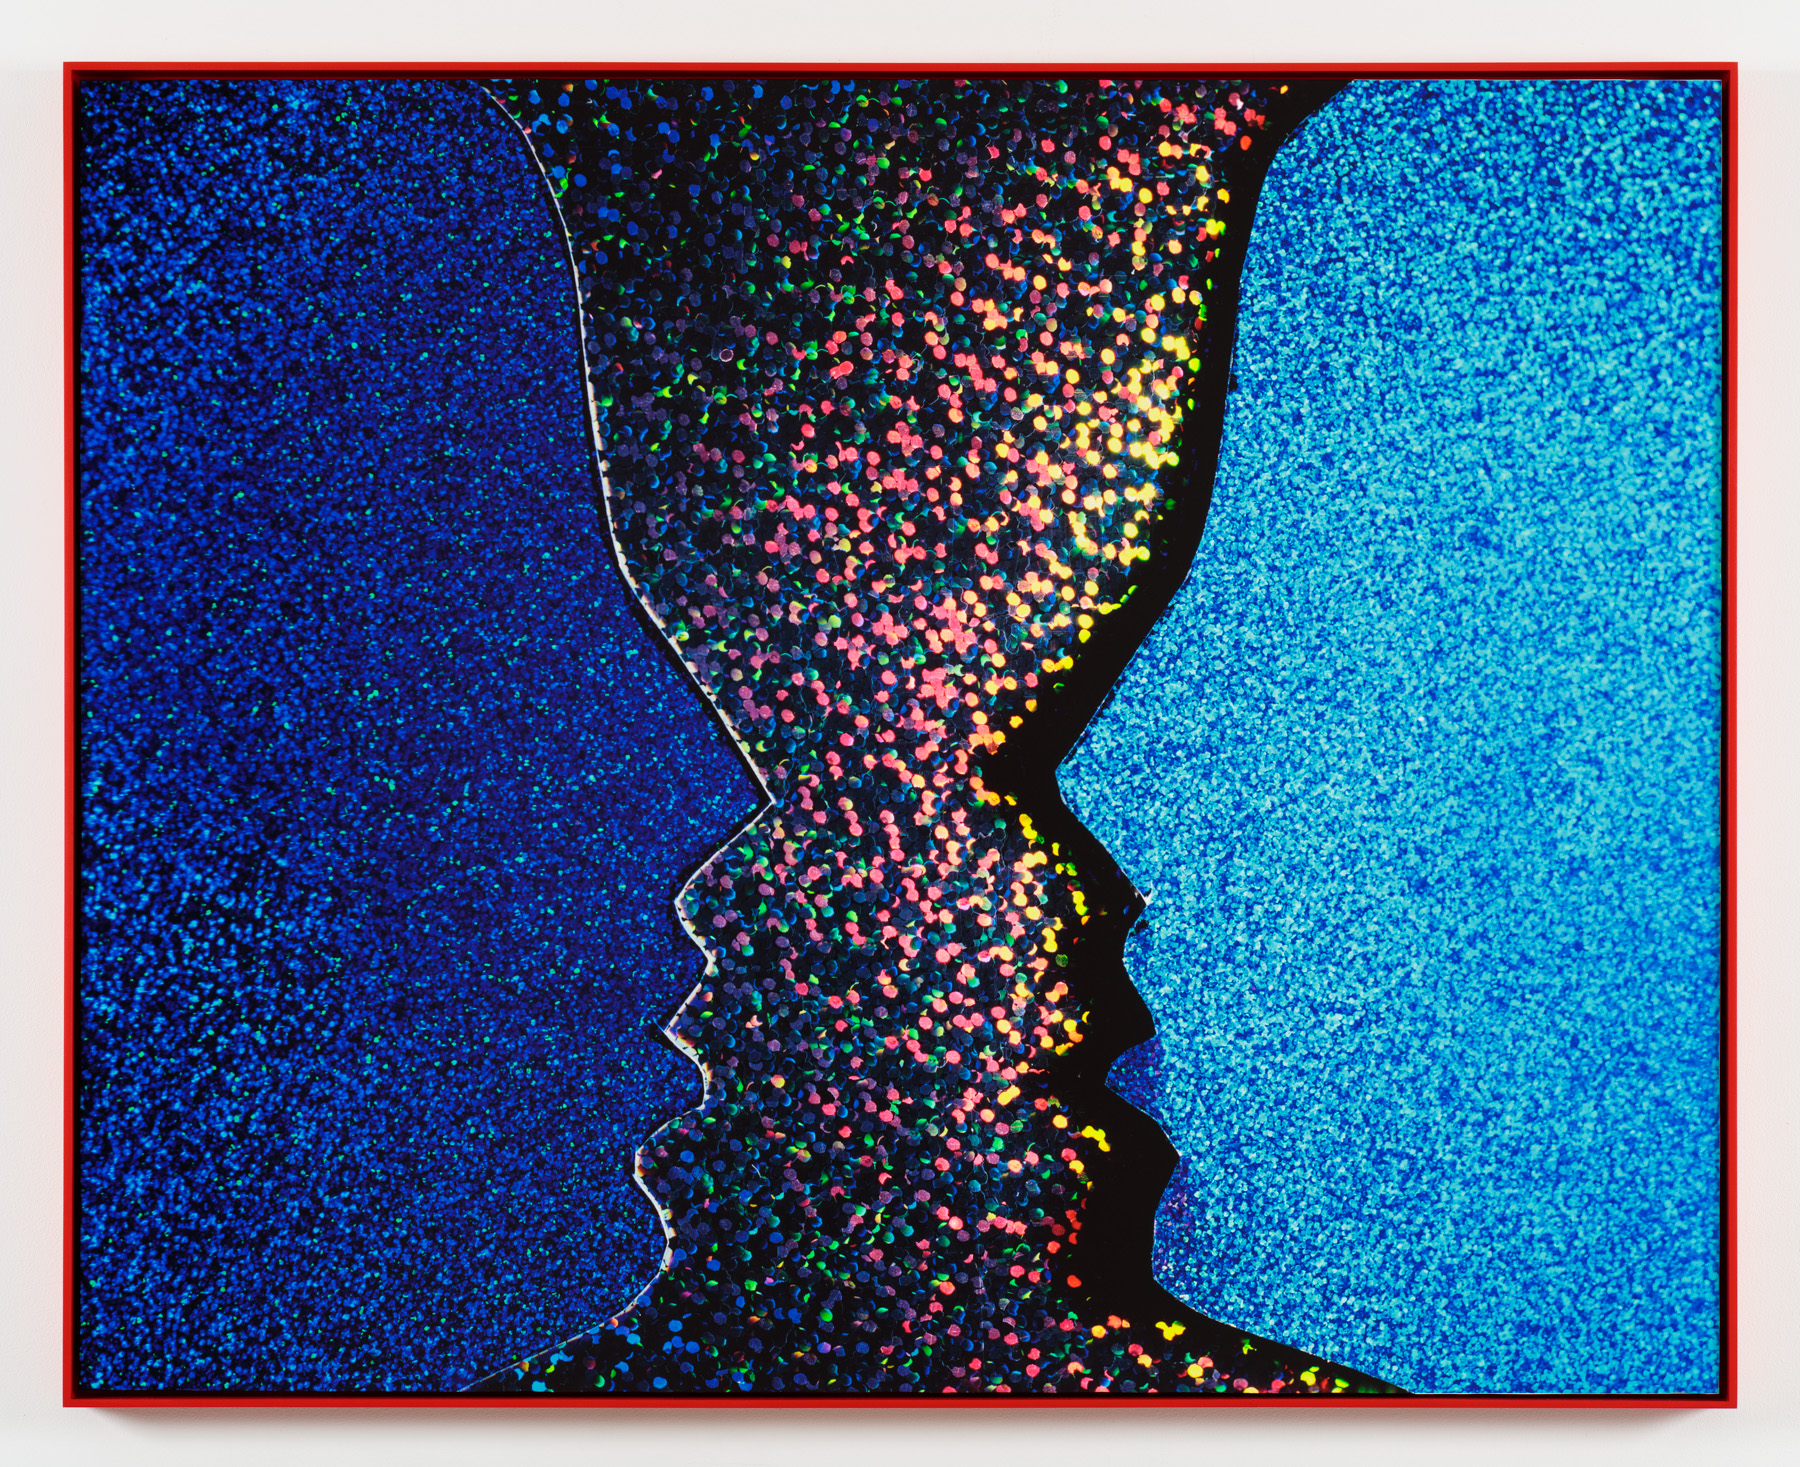 Face 2 Face   Archival Inkjet Print  40 x 50 inches  edition of 3 + AP  2016